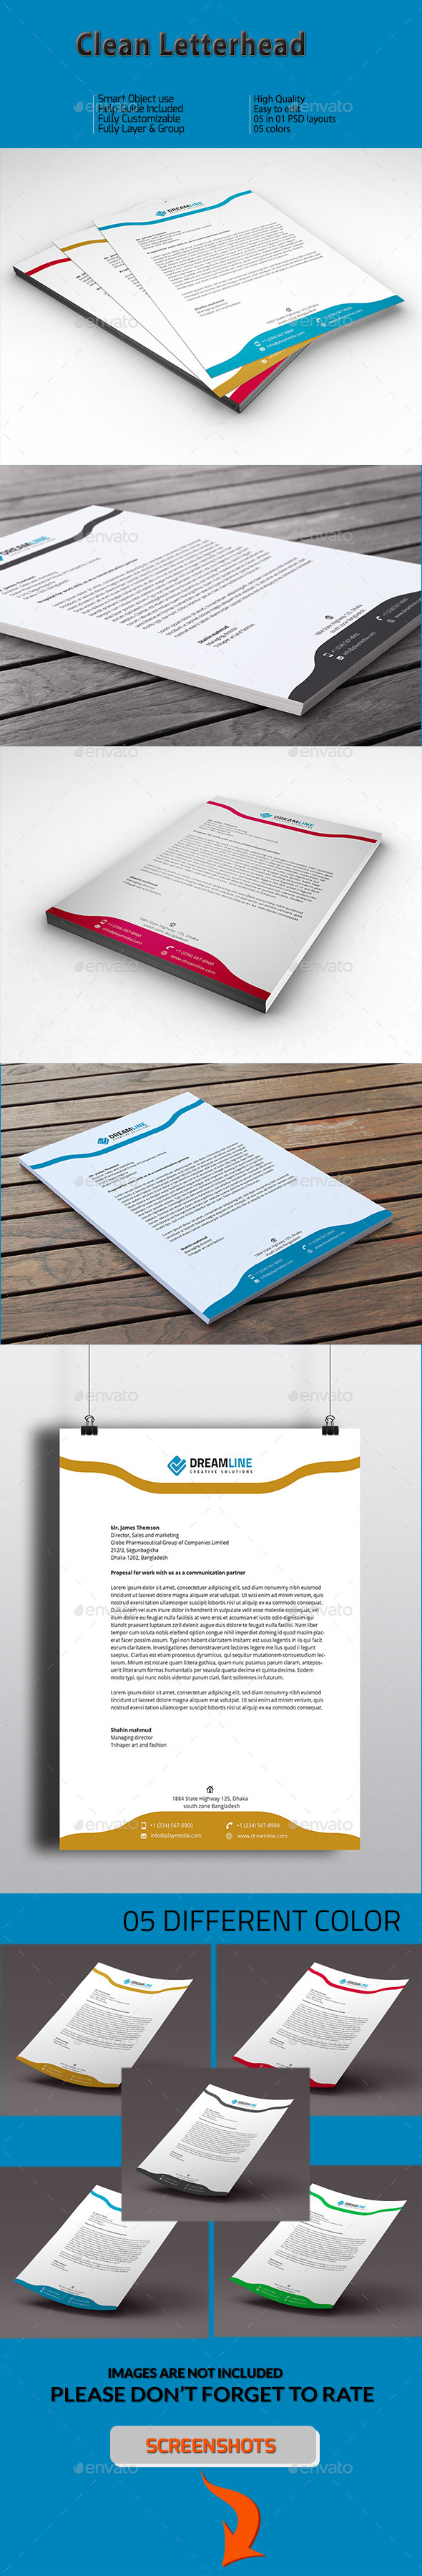 GraphicRiver Clean Letterhead 11203320